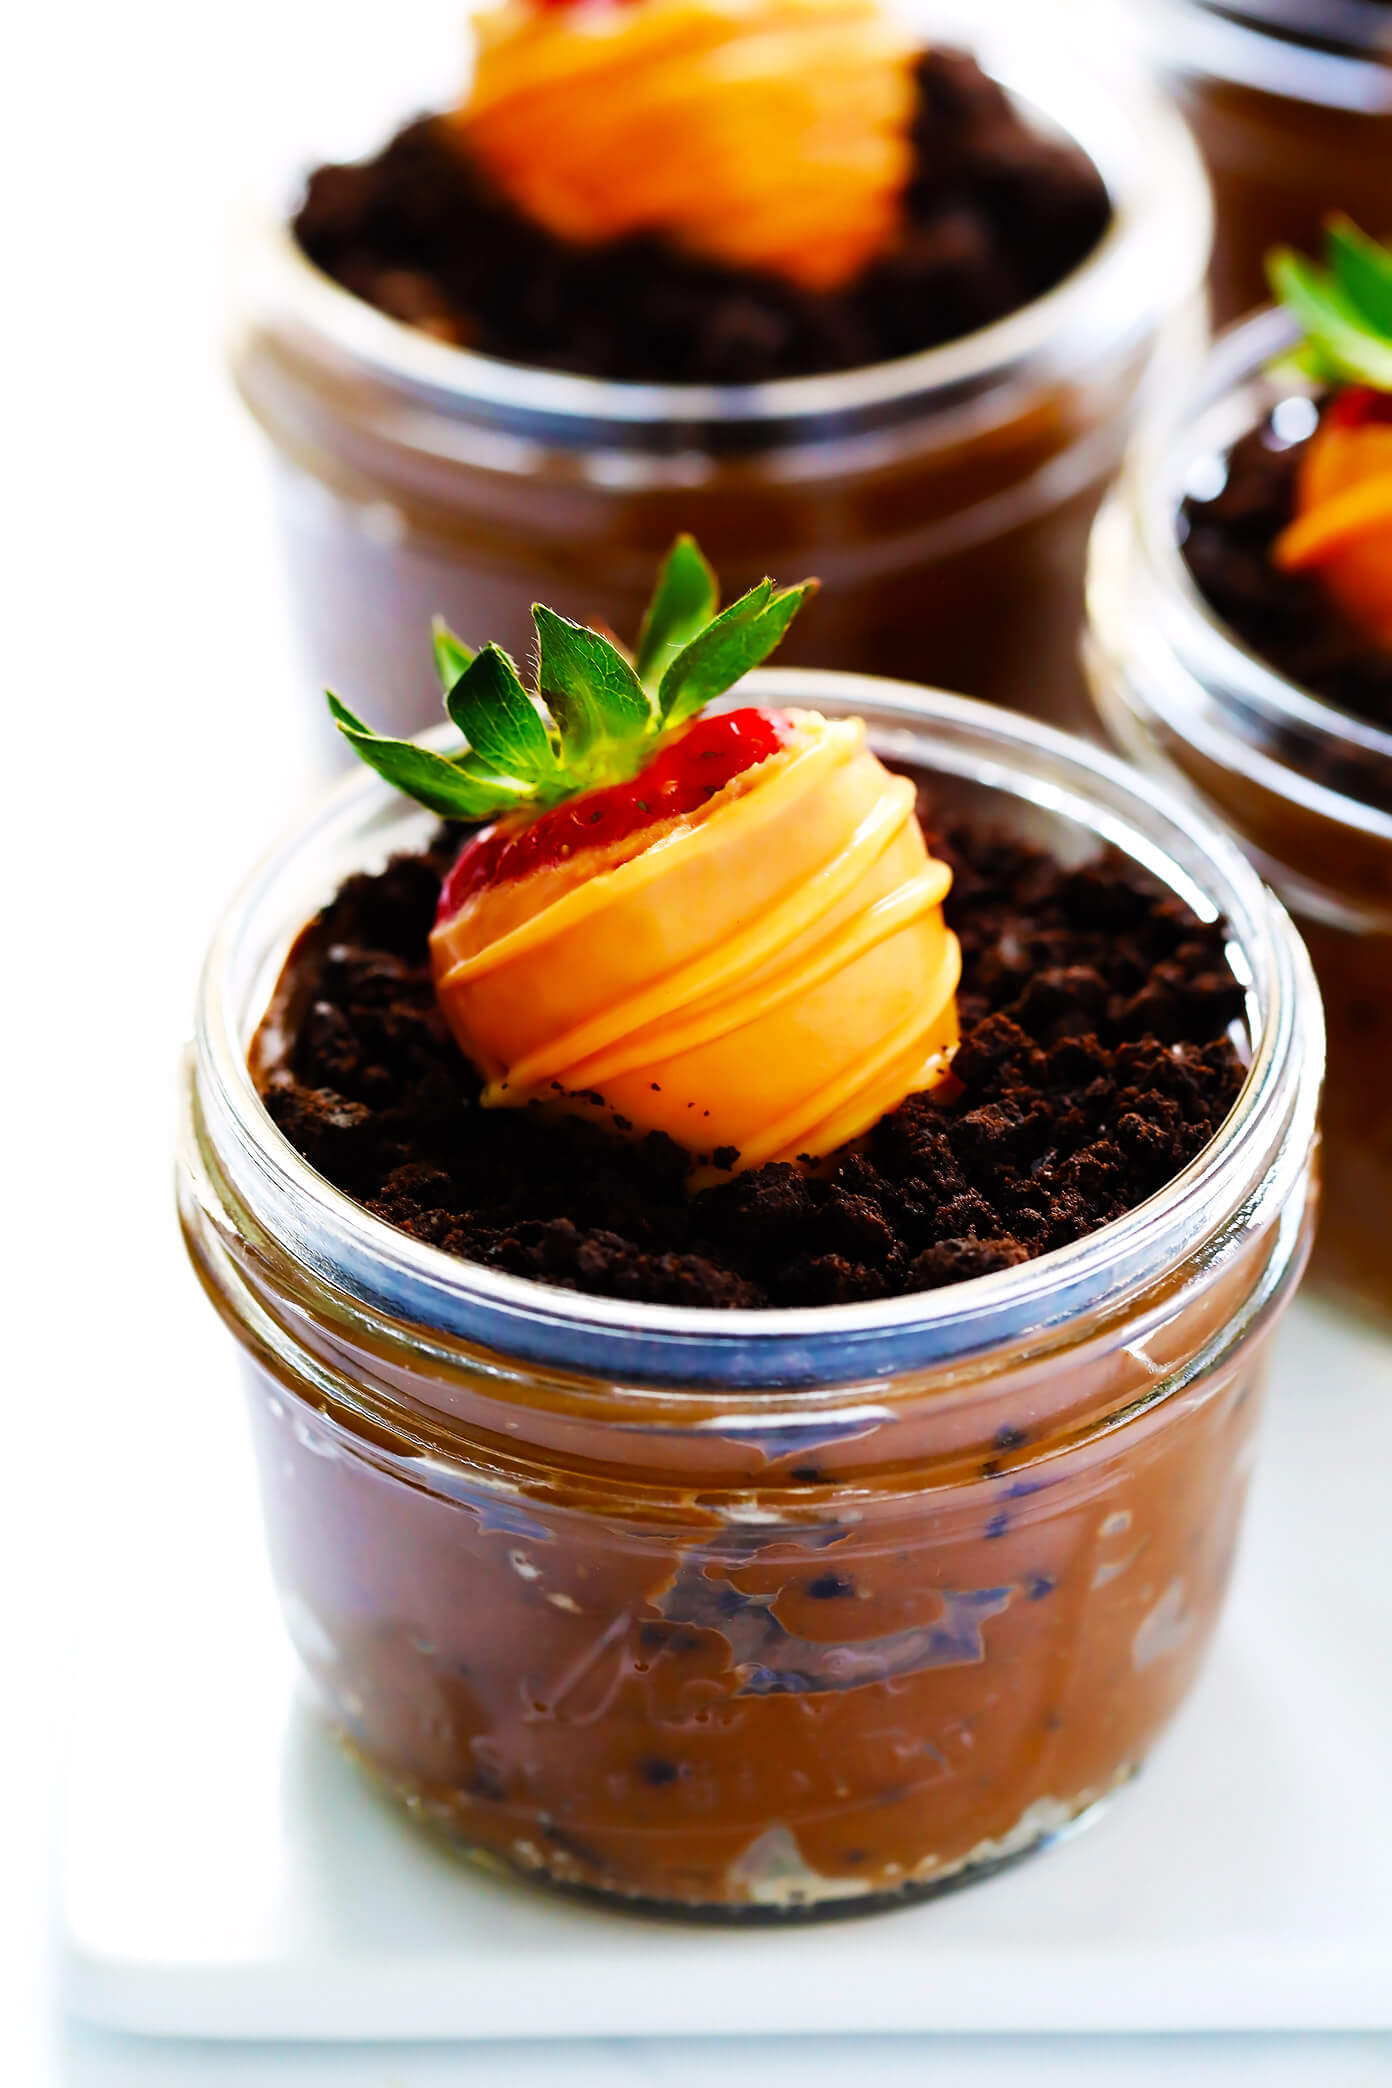 Carrot Patch Dirt Cups with Chocolate-Covered Strawberries